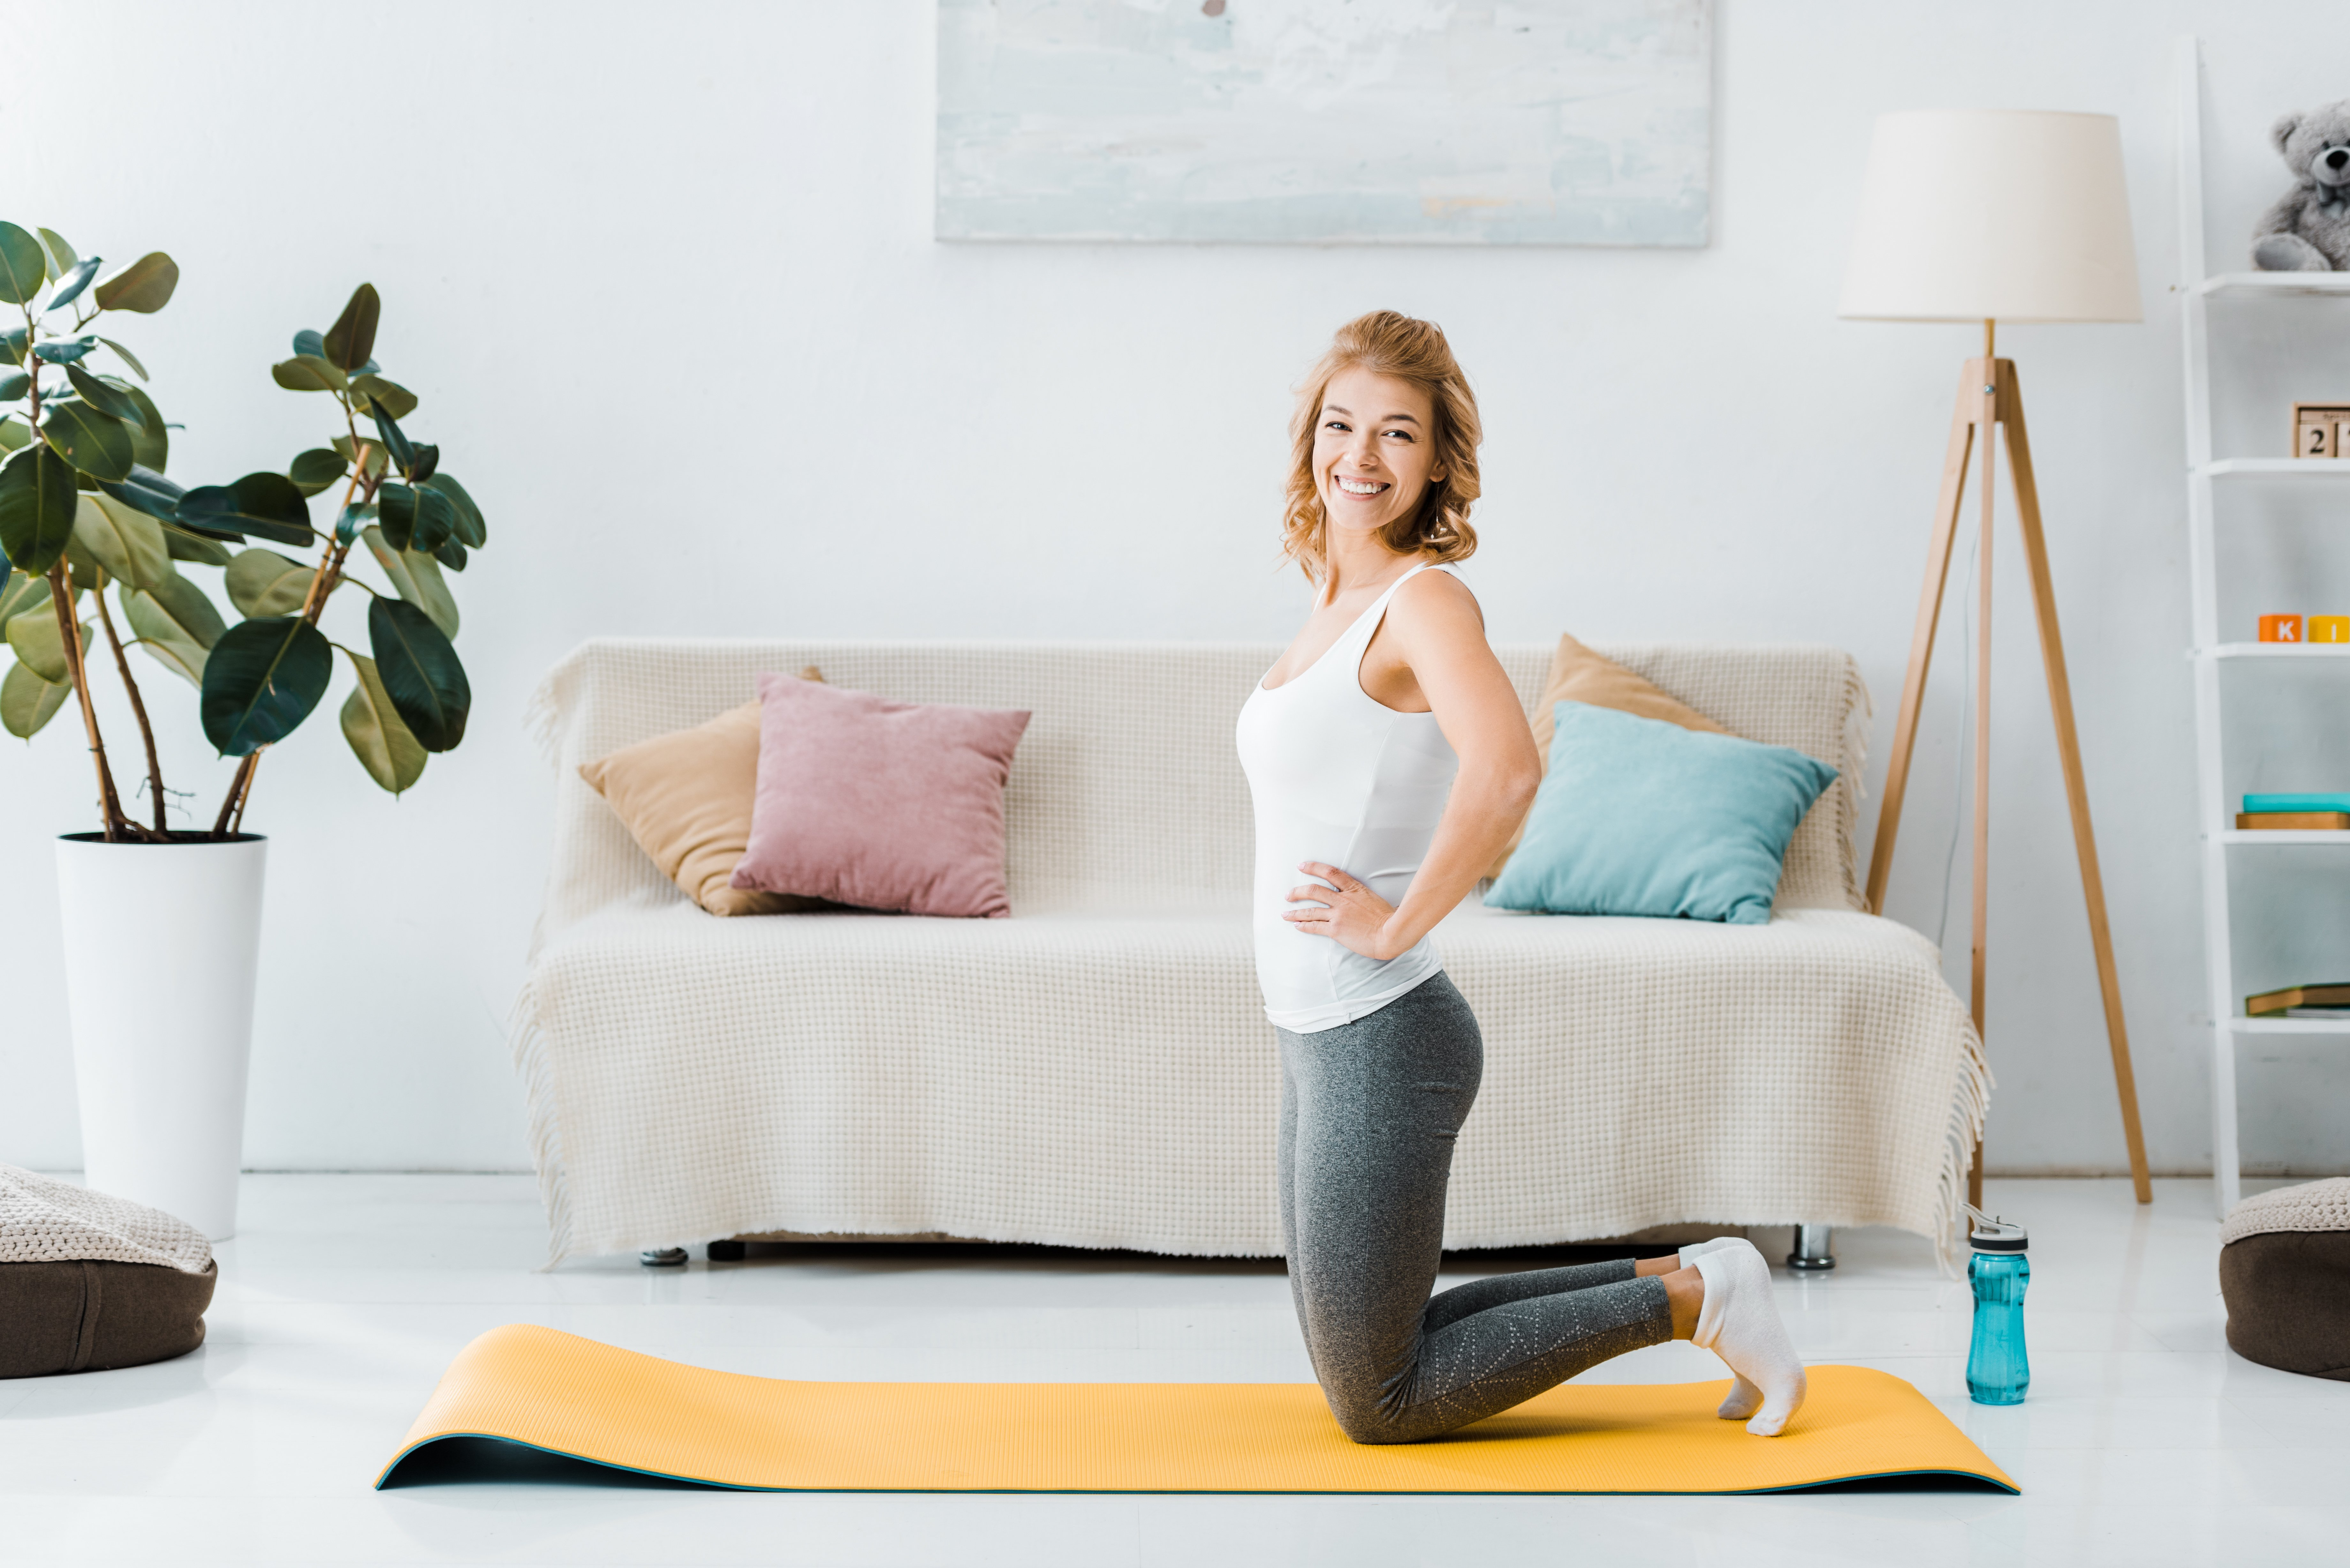 woman in sportswear kneeling on yellow fitness mat, looking at camera and smiling in living room